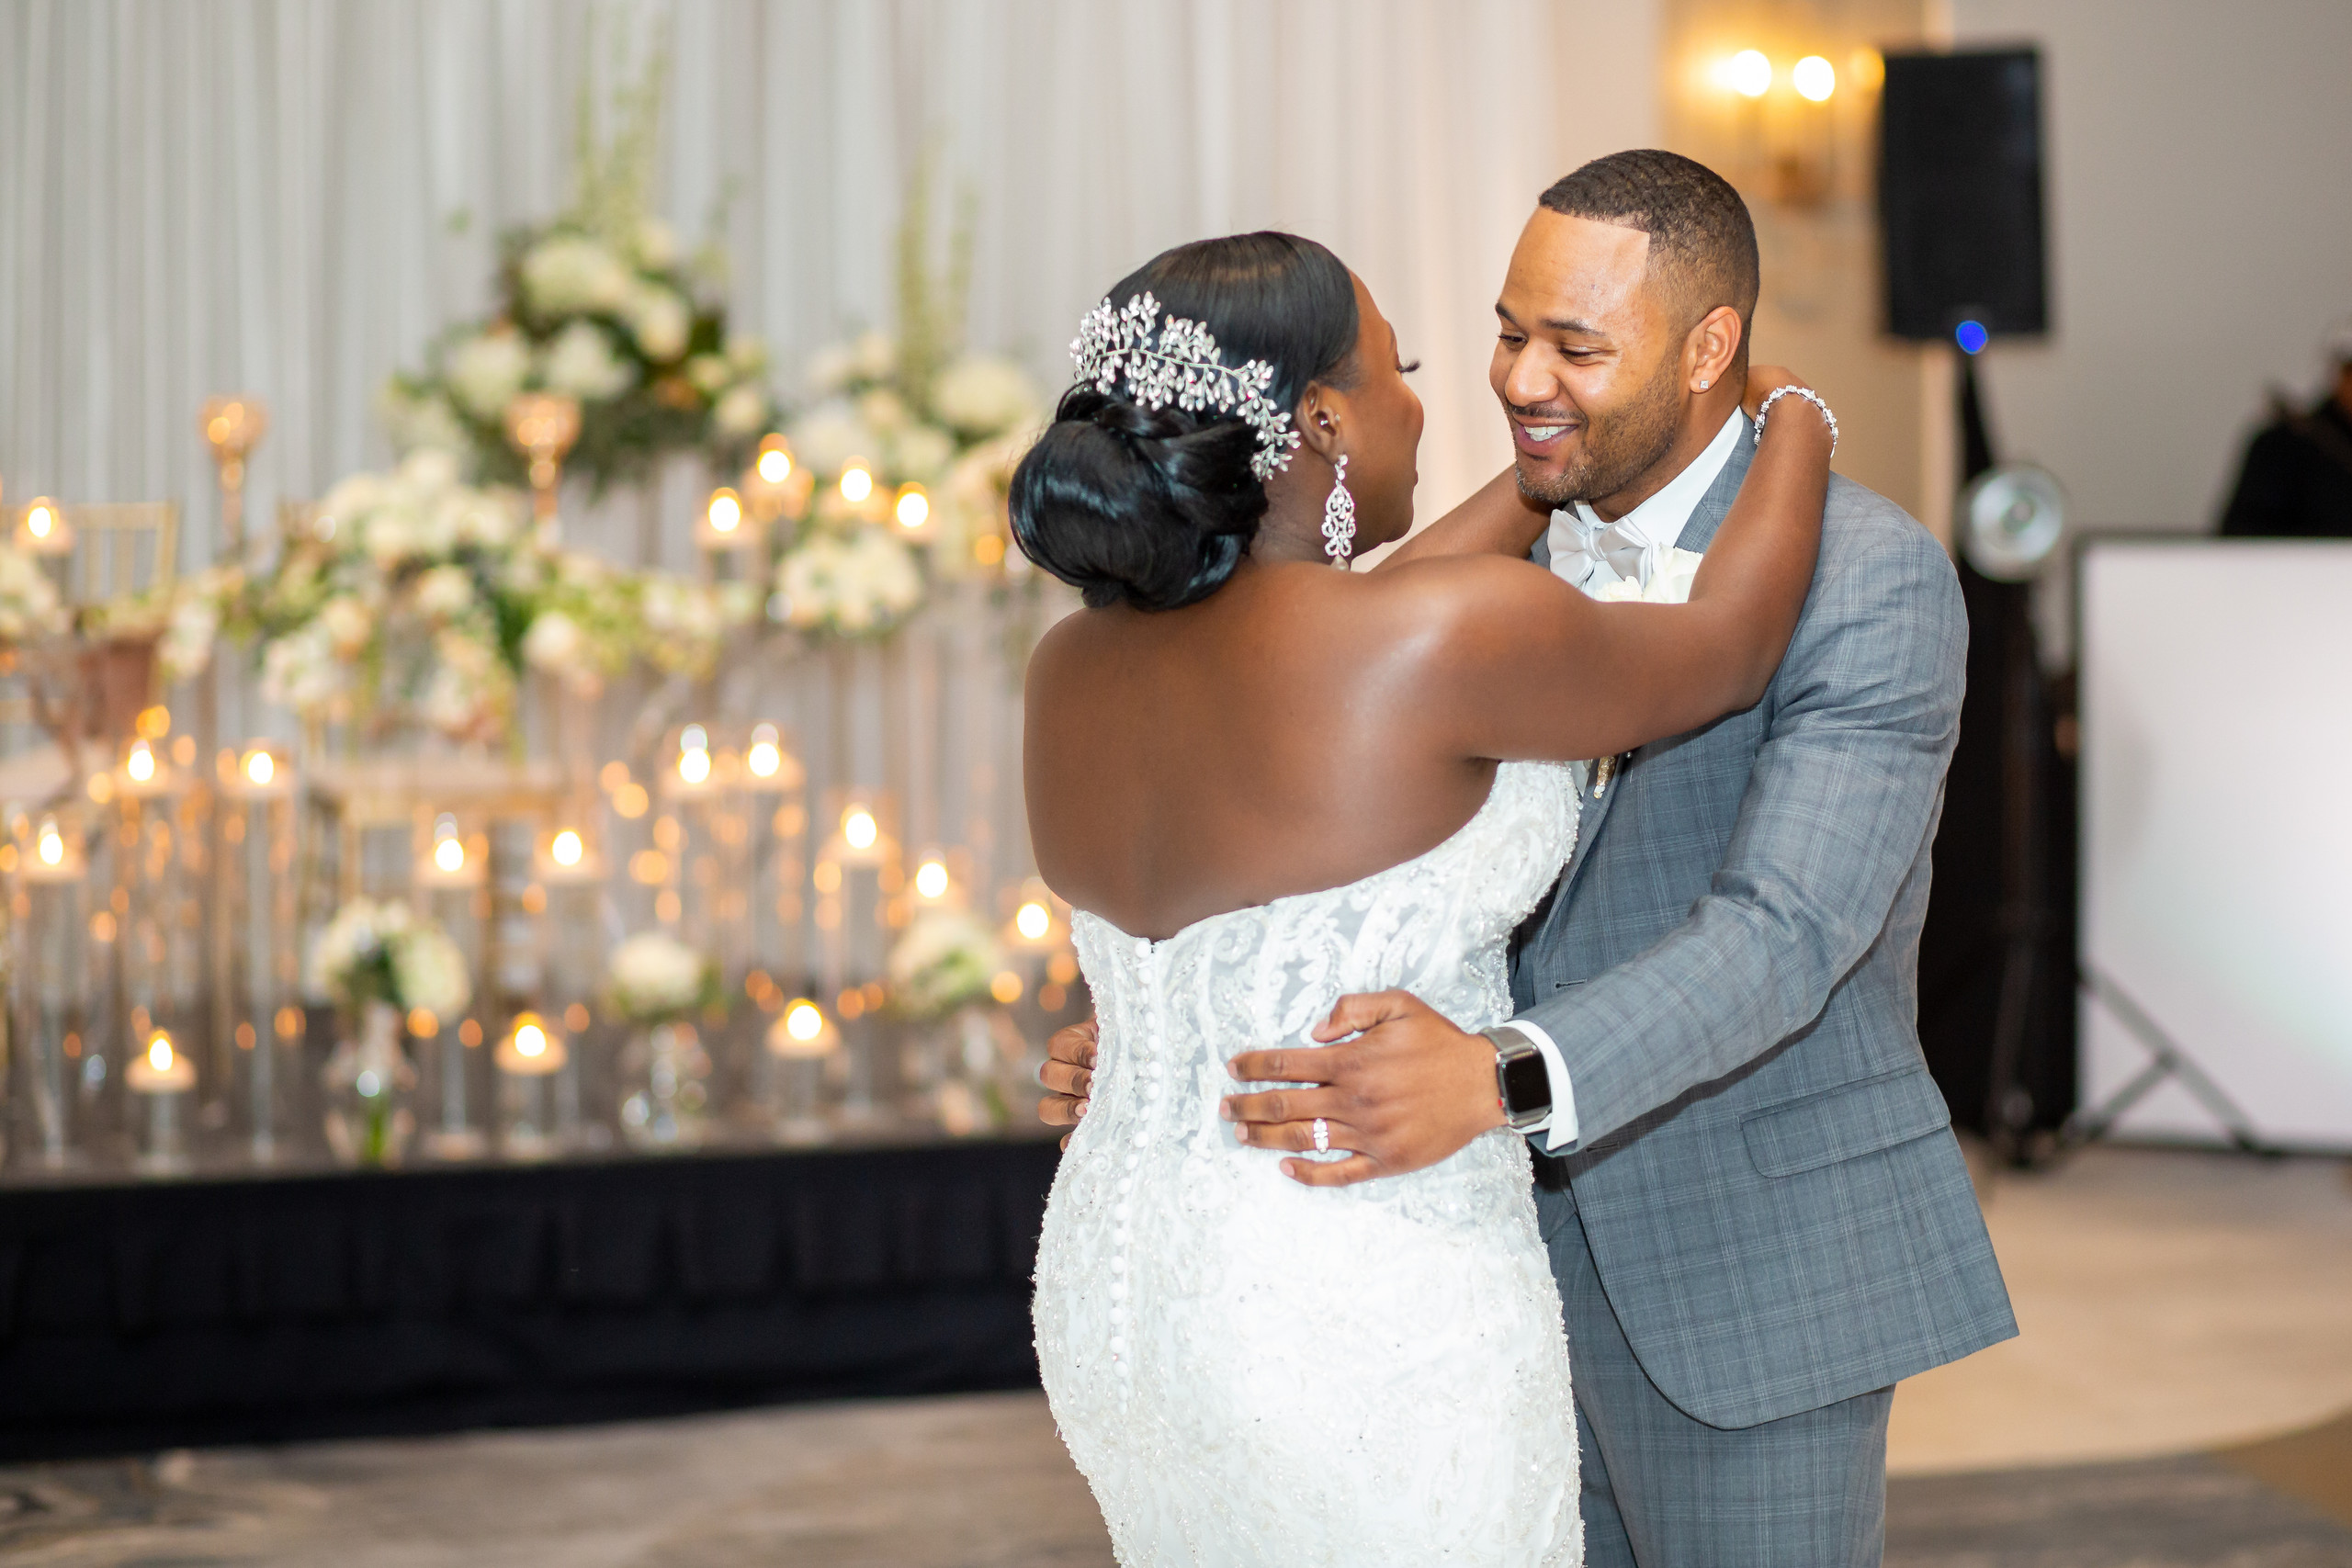 The bride and groom sharing their first dance during the wedding reception at the Hilton Main in Norfolk, Virginia.